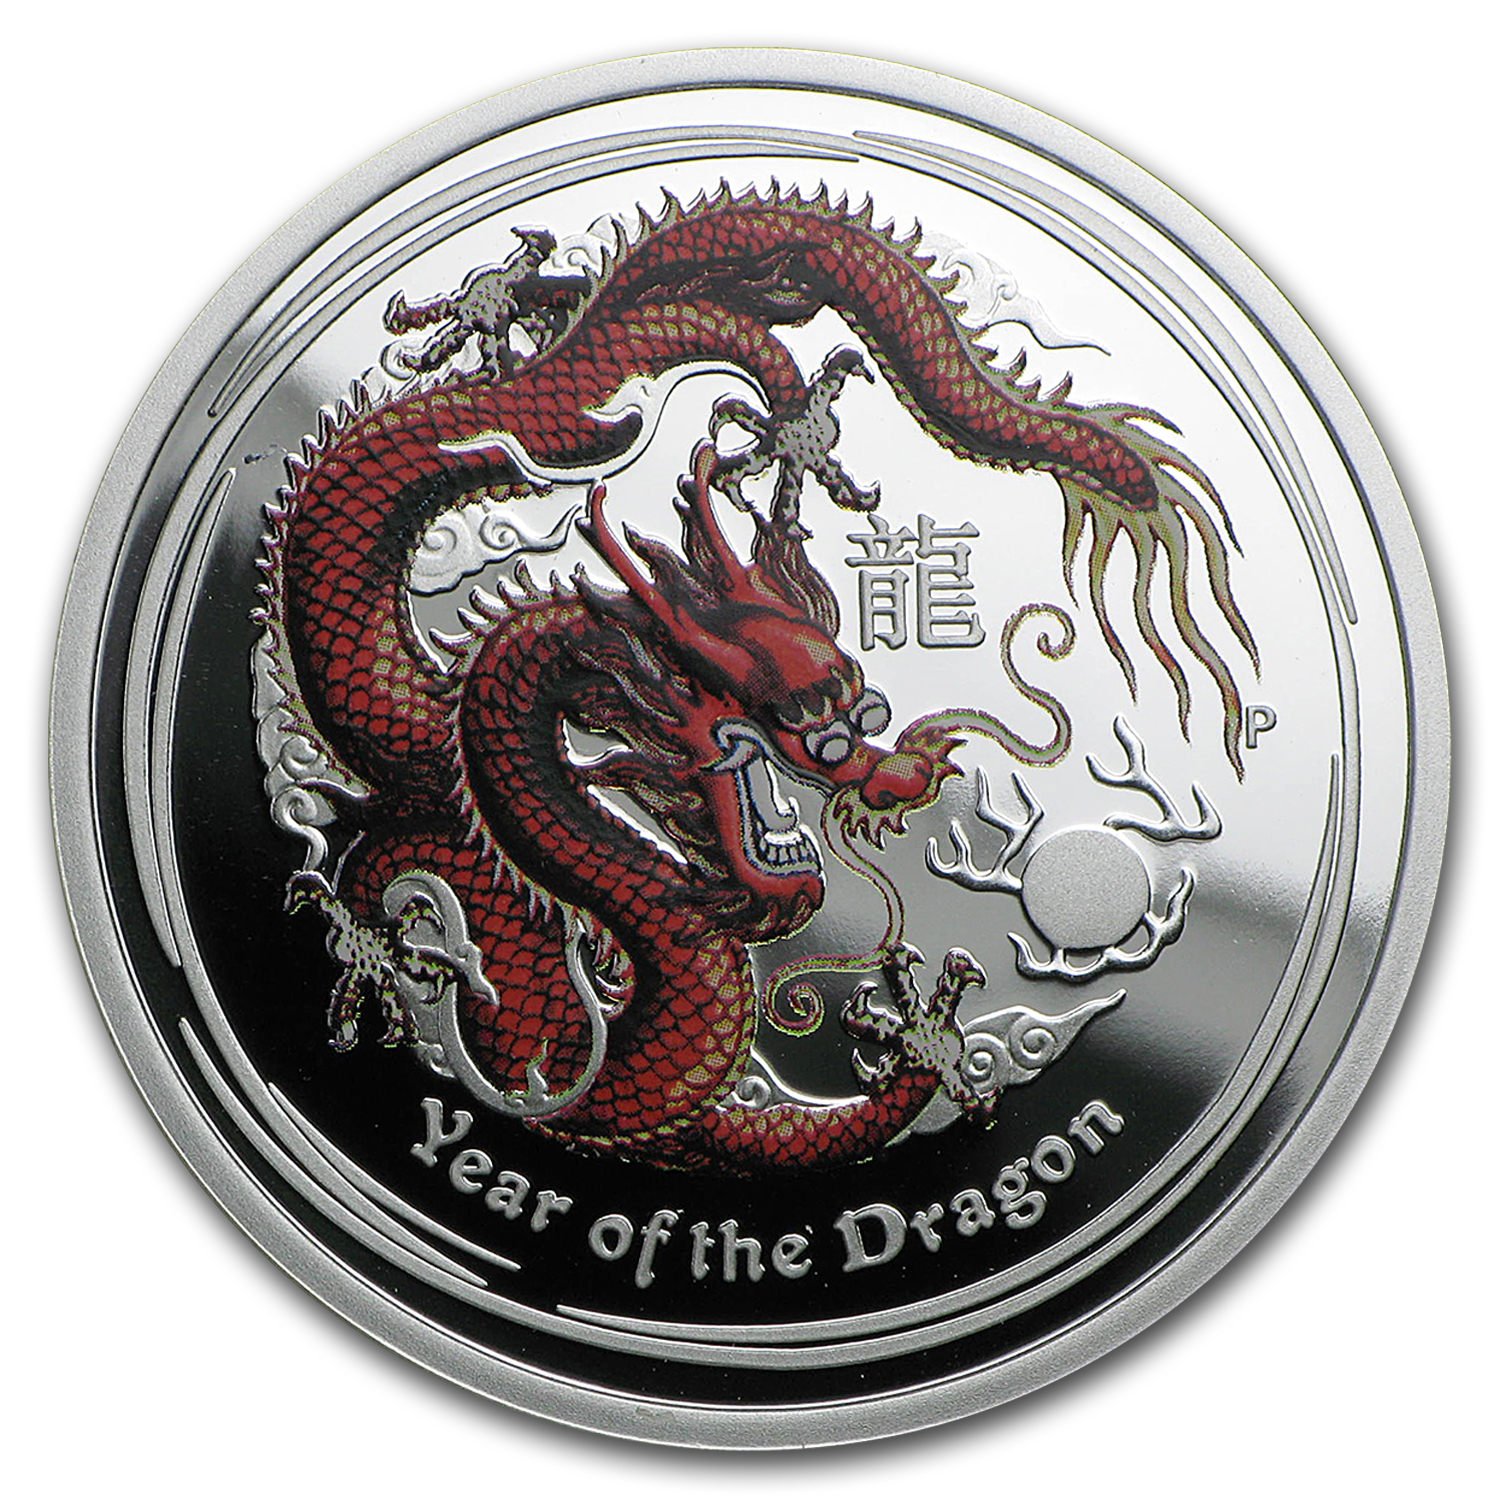 2012 Australia 1/2 oz Silver Dragon Proof (Colorized)